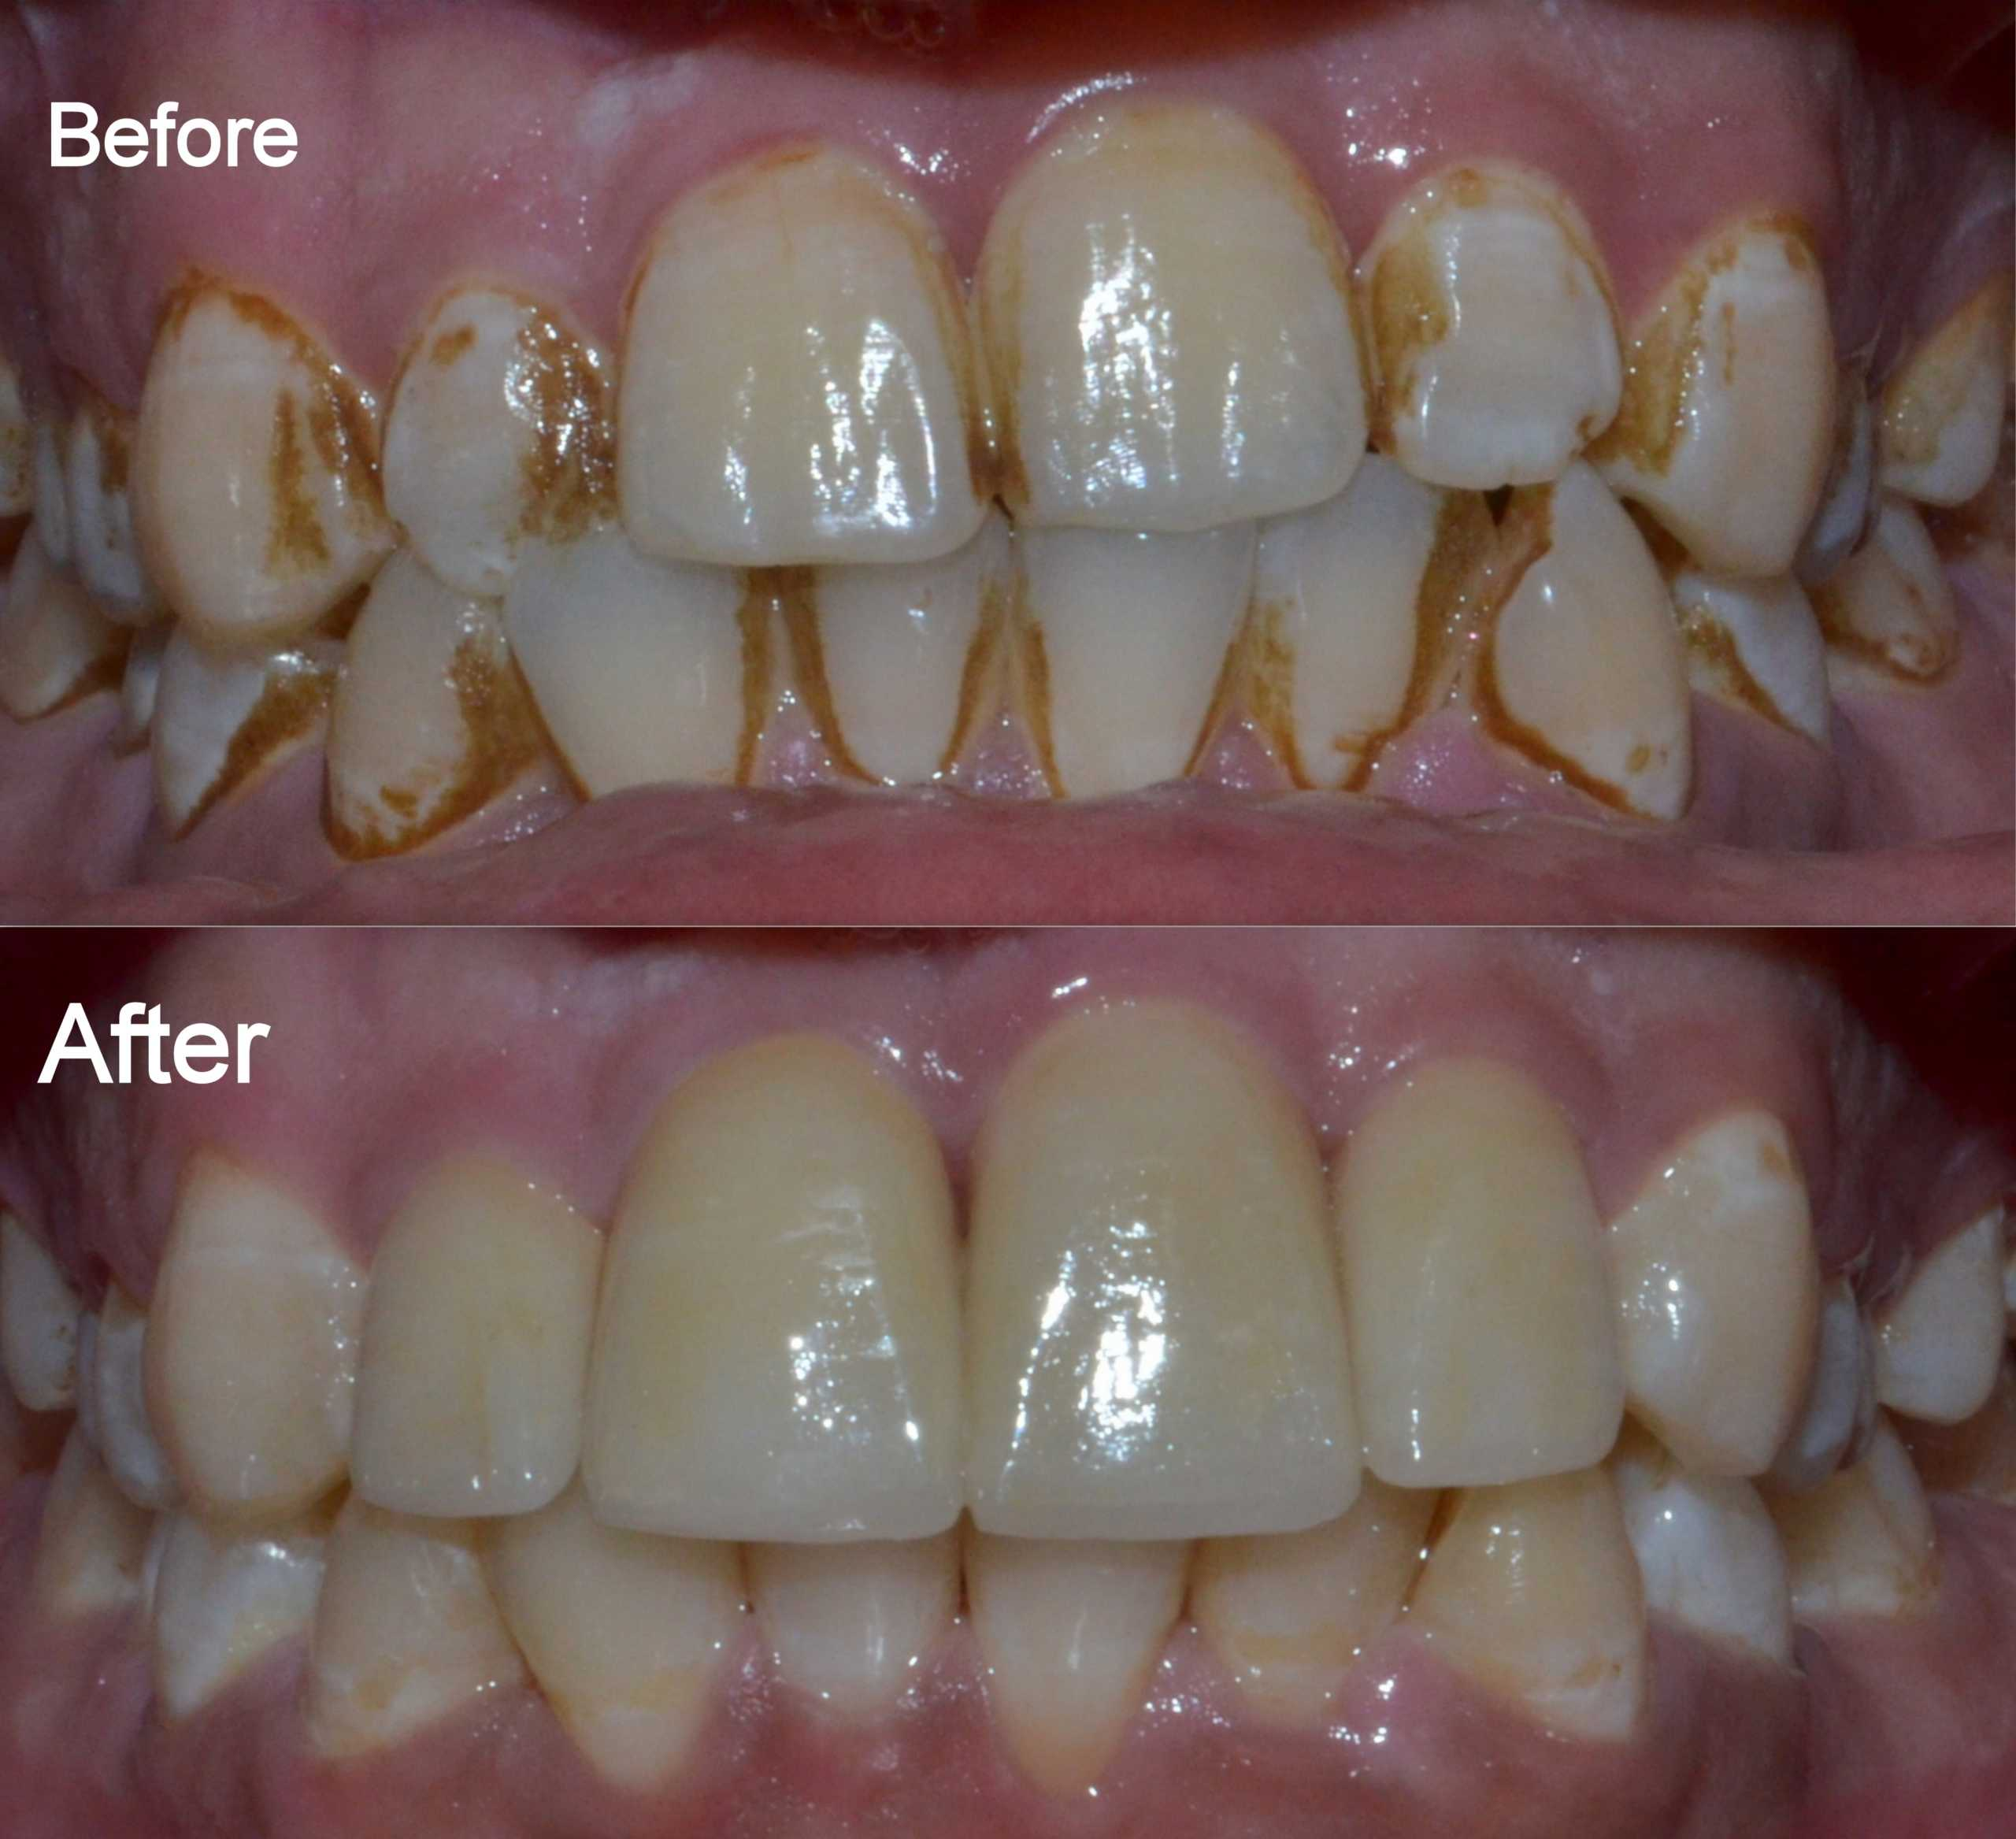 dental crowns to correct bite and increase size of teeth